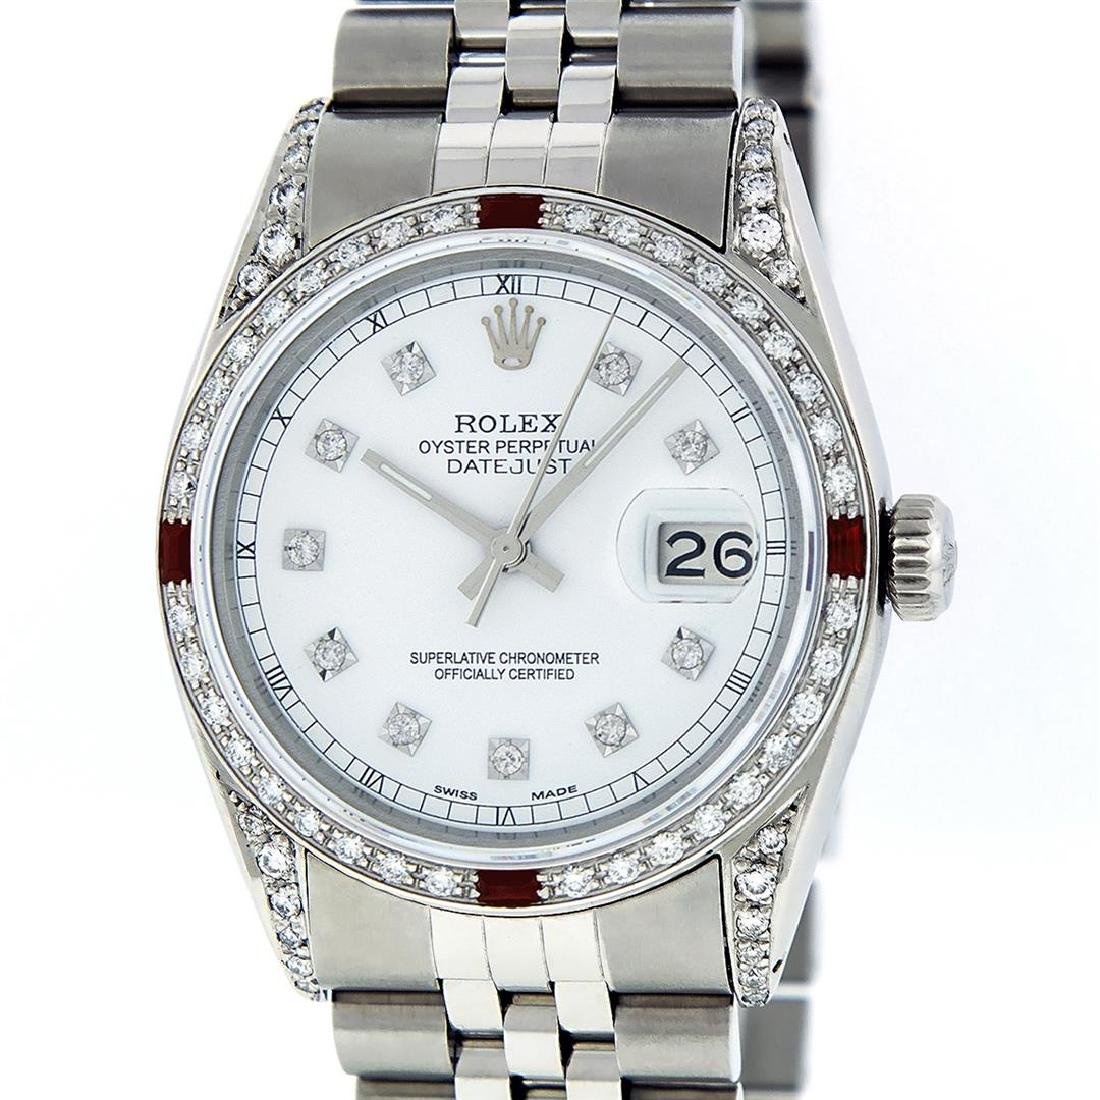 Rolex Men's Stainless Steel Diamond Lugs & Ruby